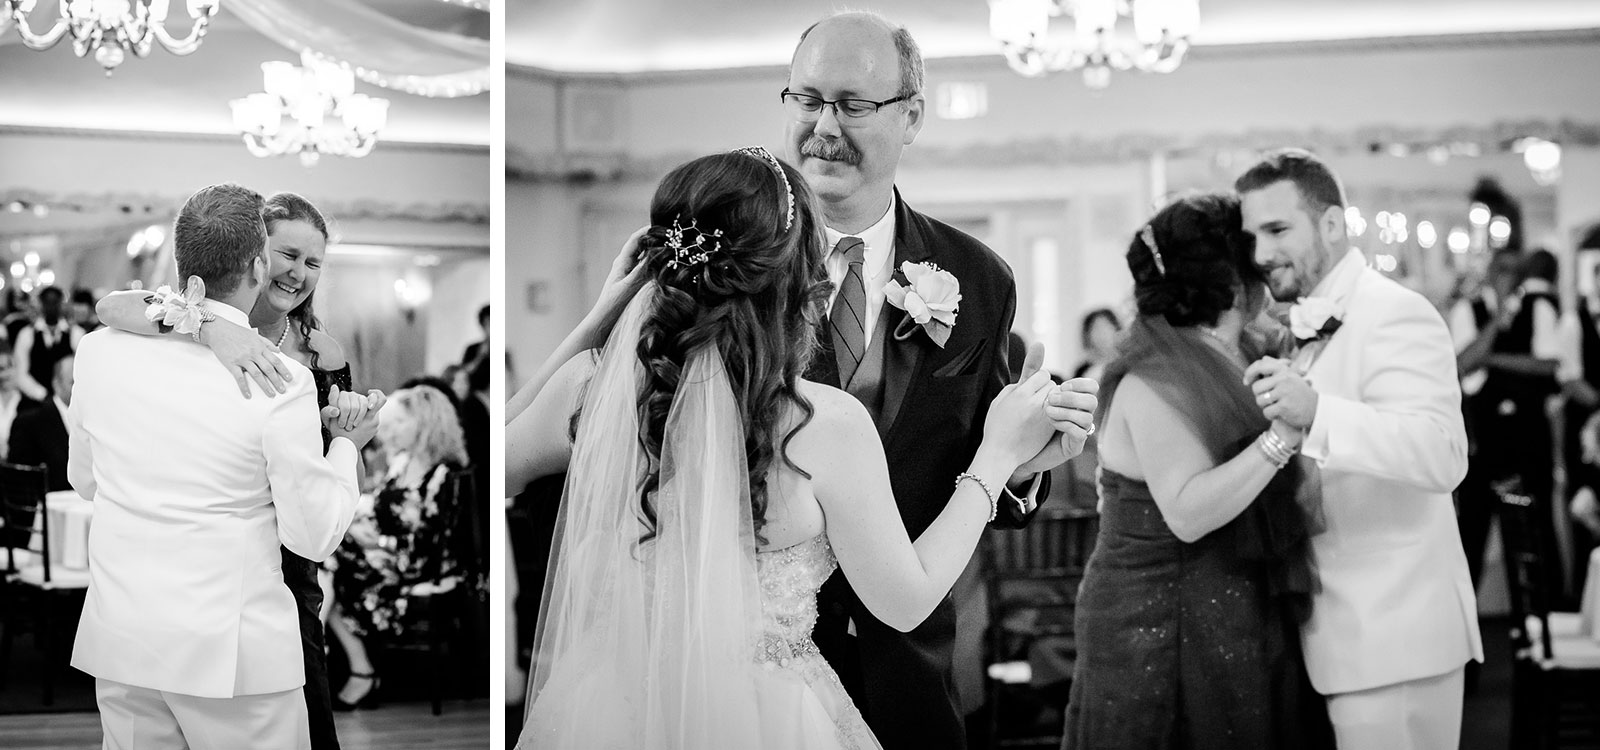 Eric_and_Christy_Photography_Blog_Wedding_Eva_Andrew-54-55